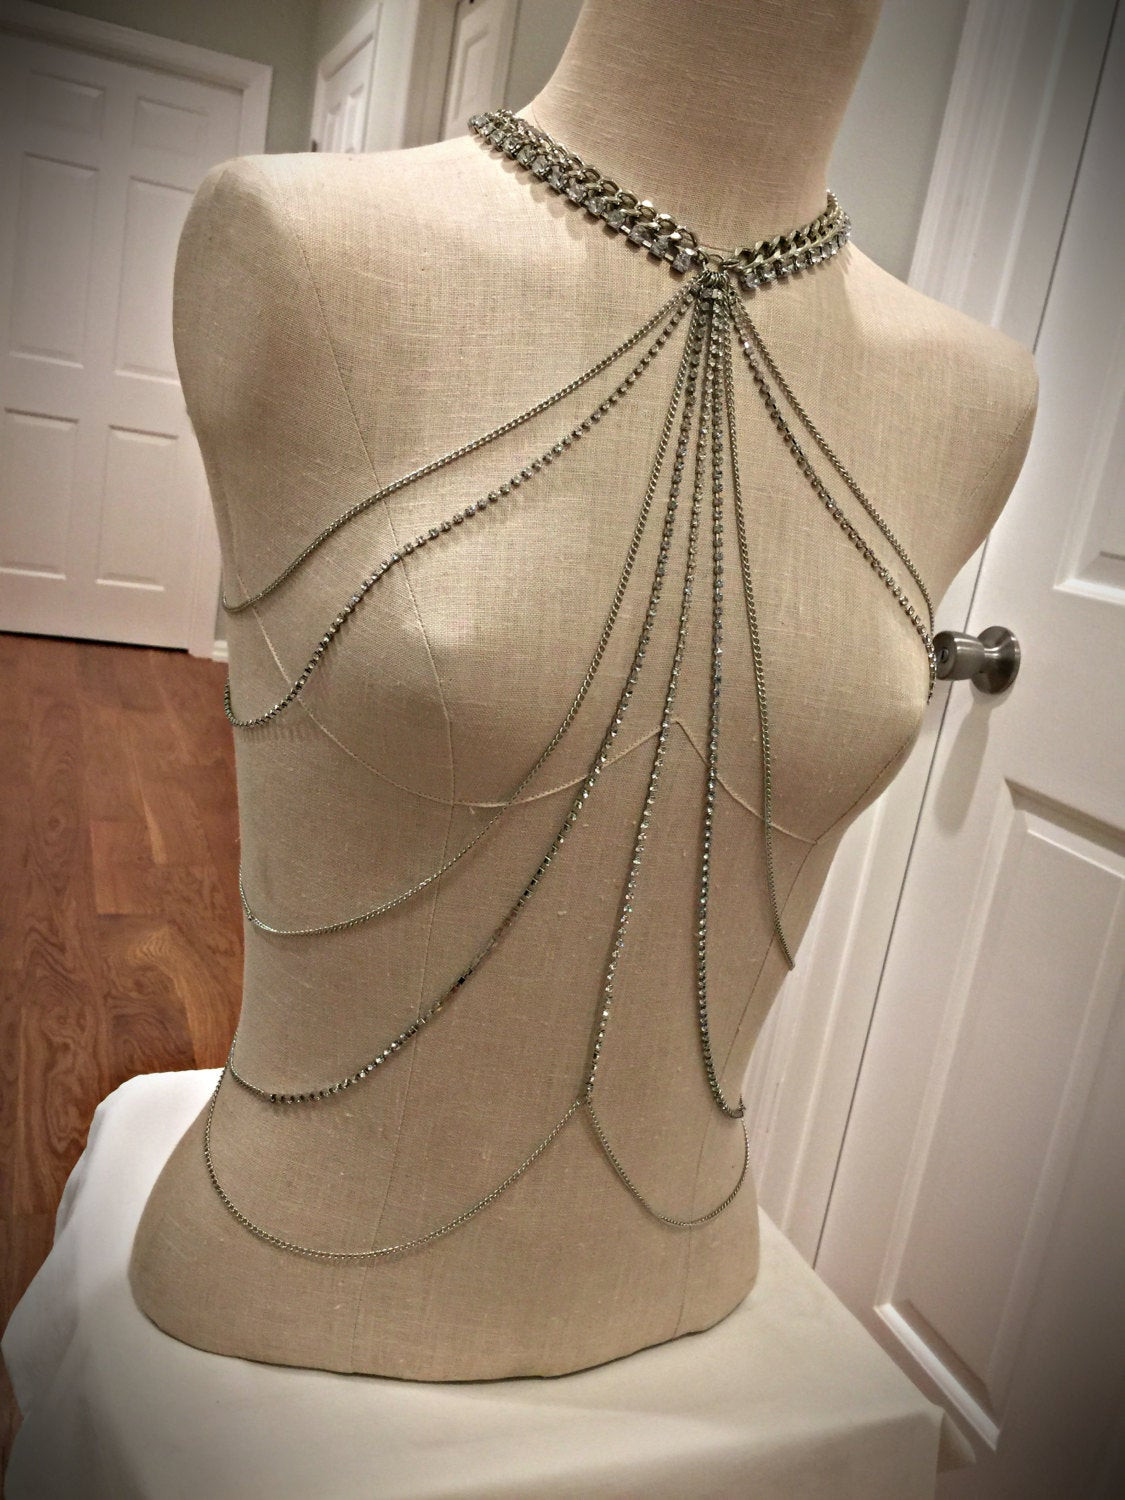 Body Jewelry Shoulder  Shoulder Jewelry Shoulder Chains Body Chains Top by MirelaS